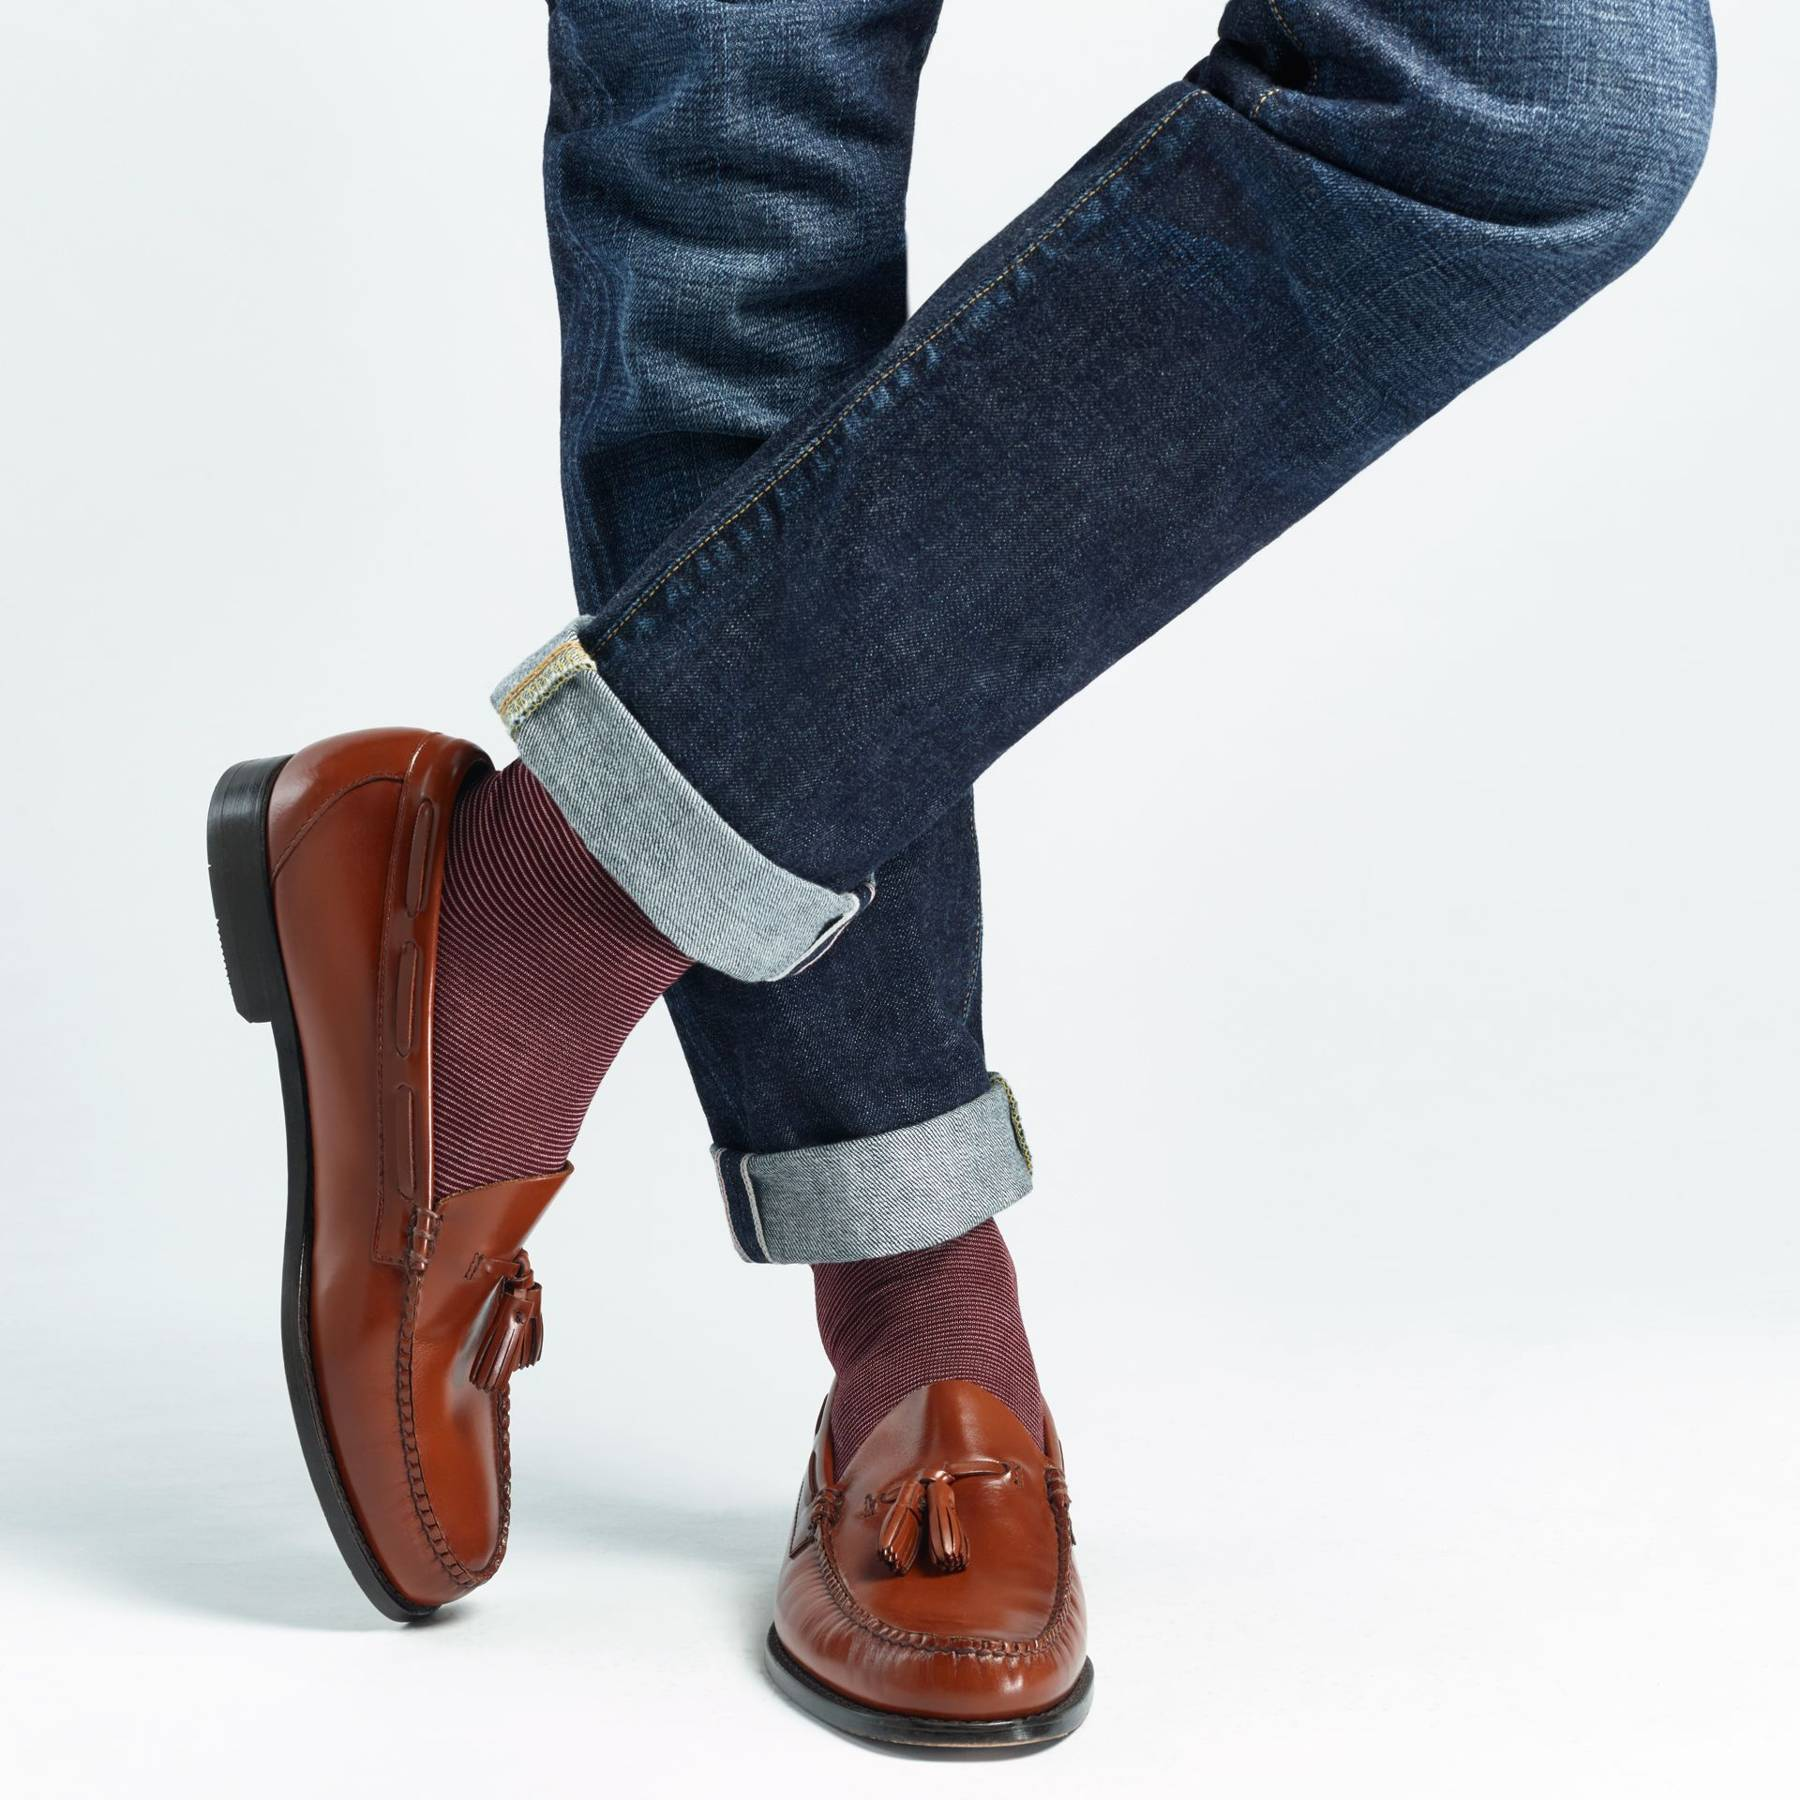 80f5f653966 How to wear loafers